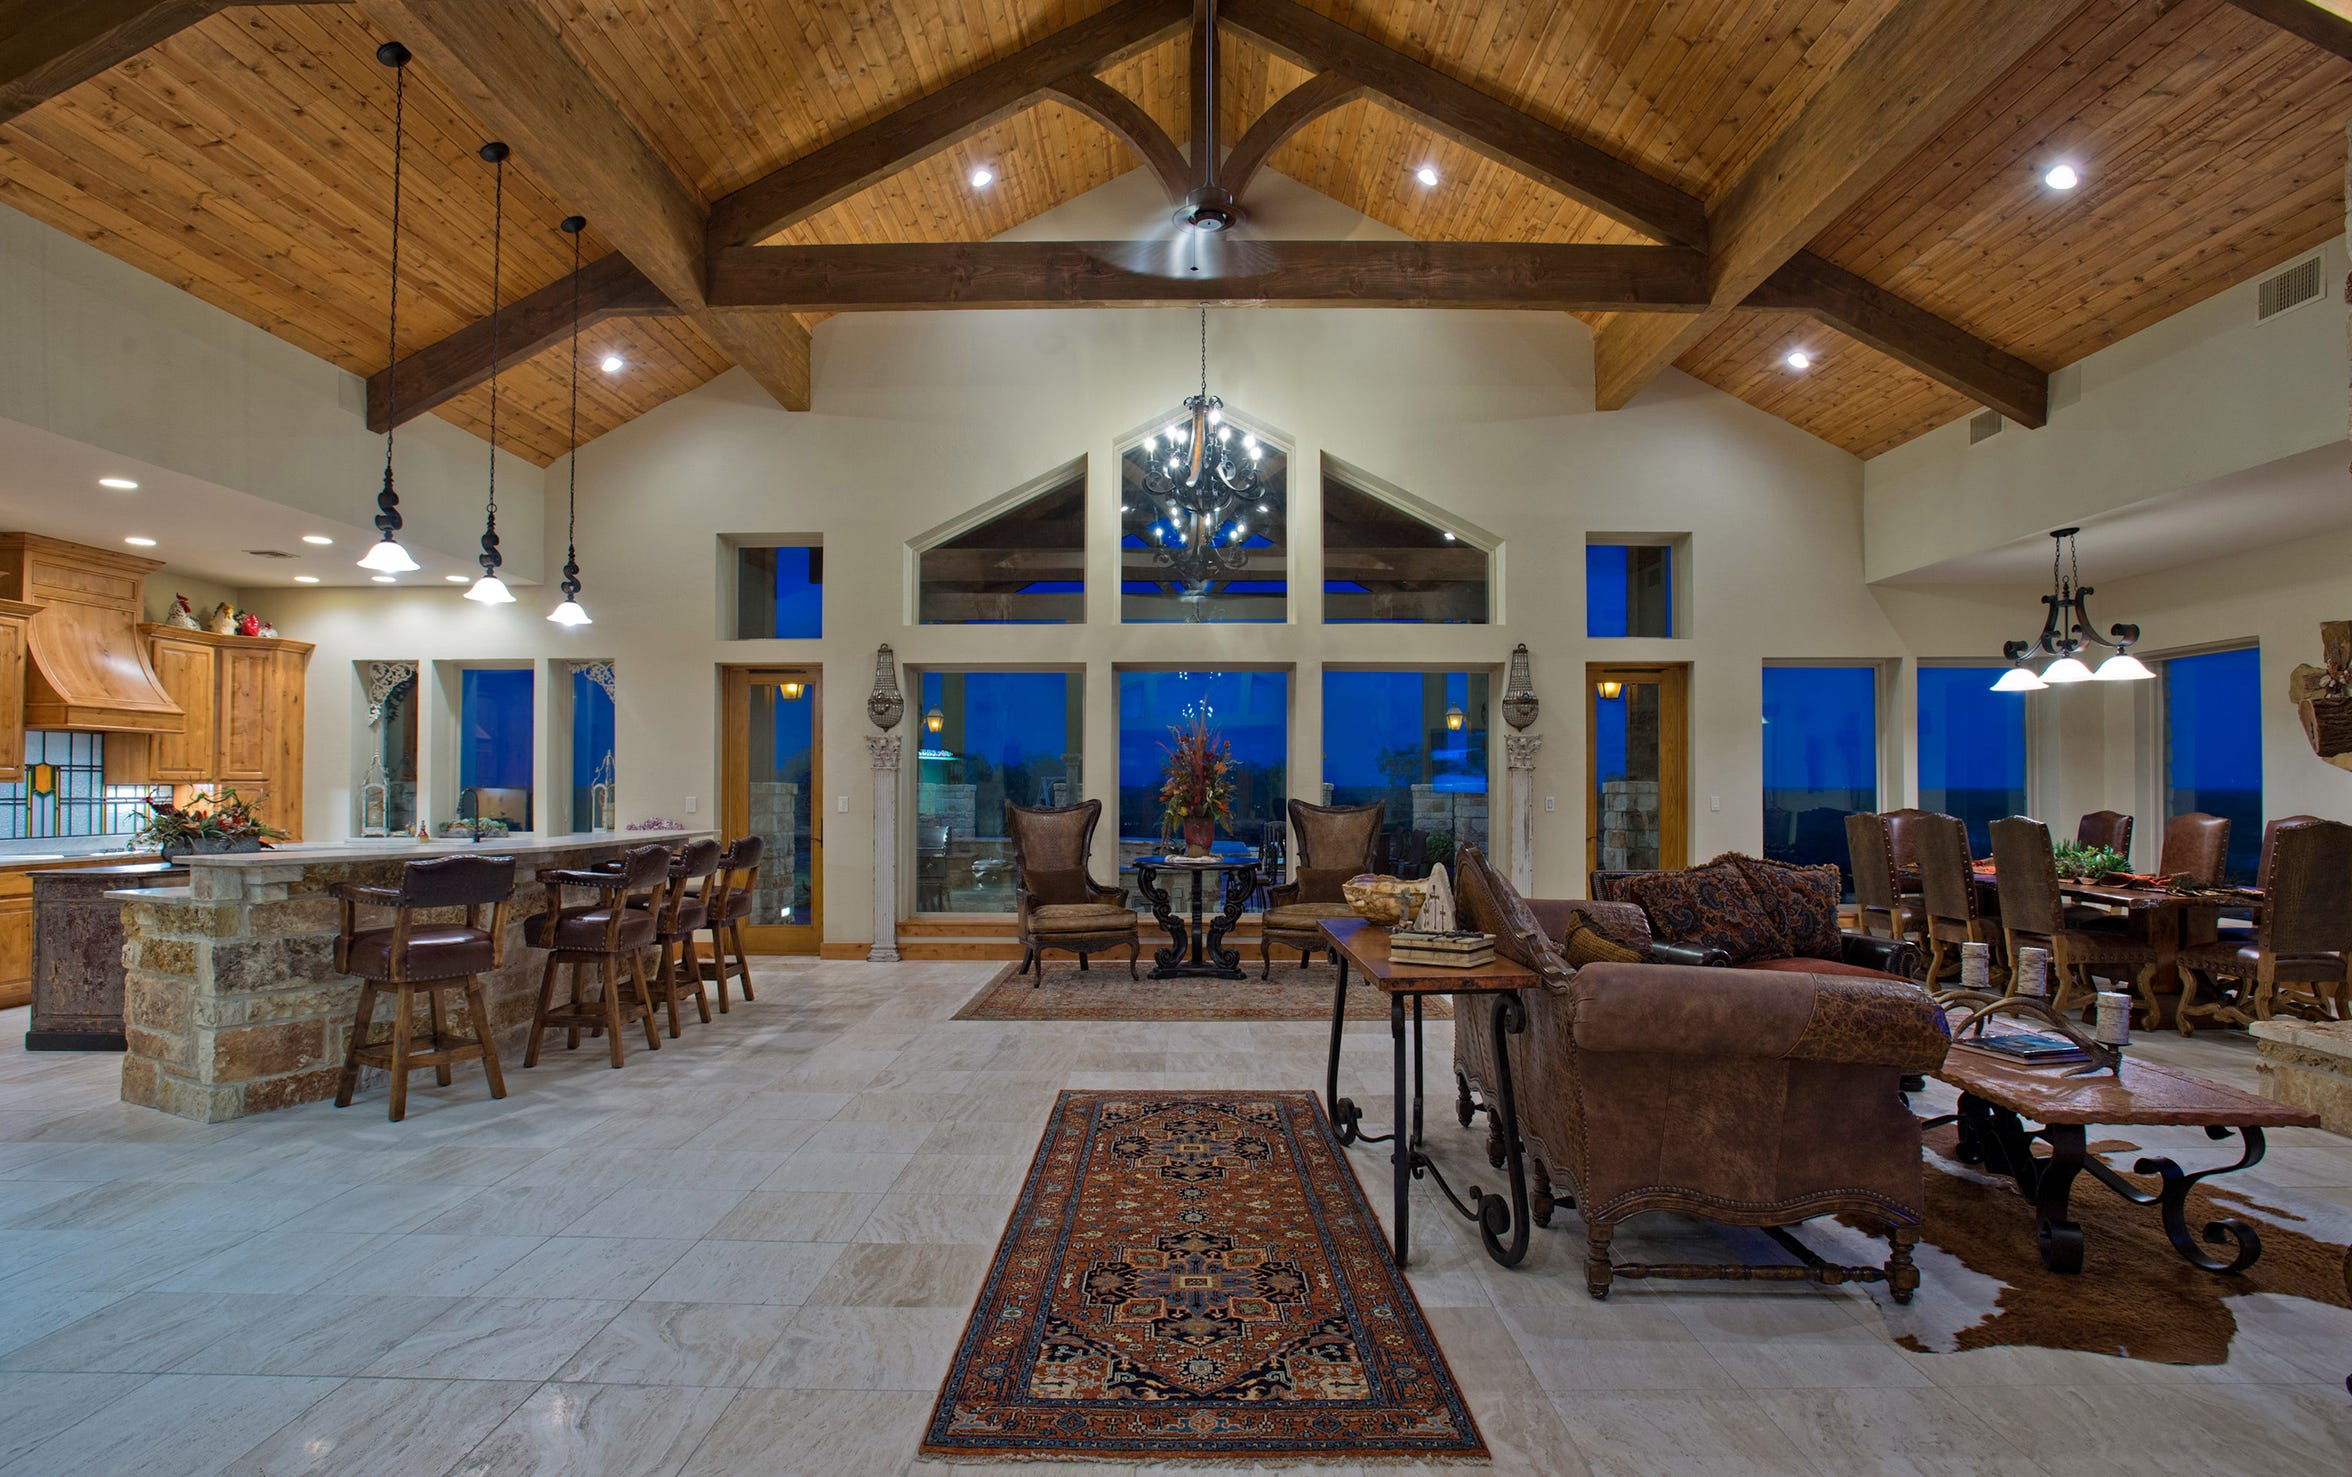 Heavy solid wood truss beams span 22ft. douglas fir wood ceilings in the massive wide open living, kitchen and dining space.  A wall of windows overlook the amazing outdoor living spaces and acreage.